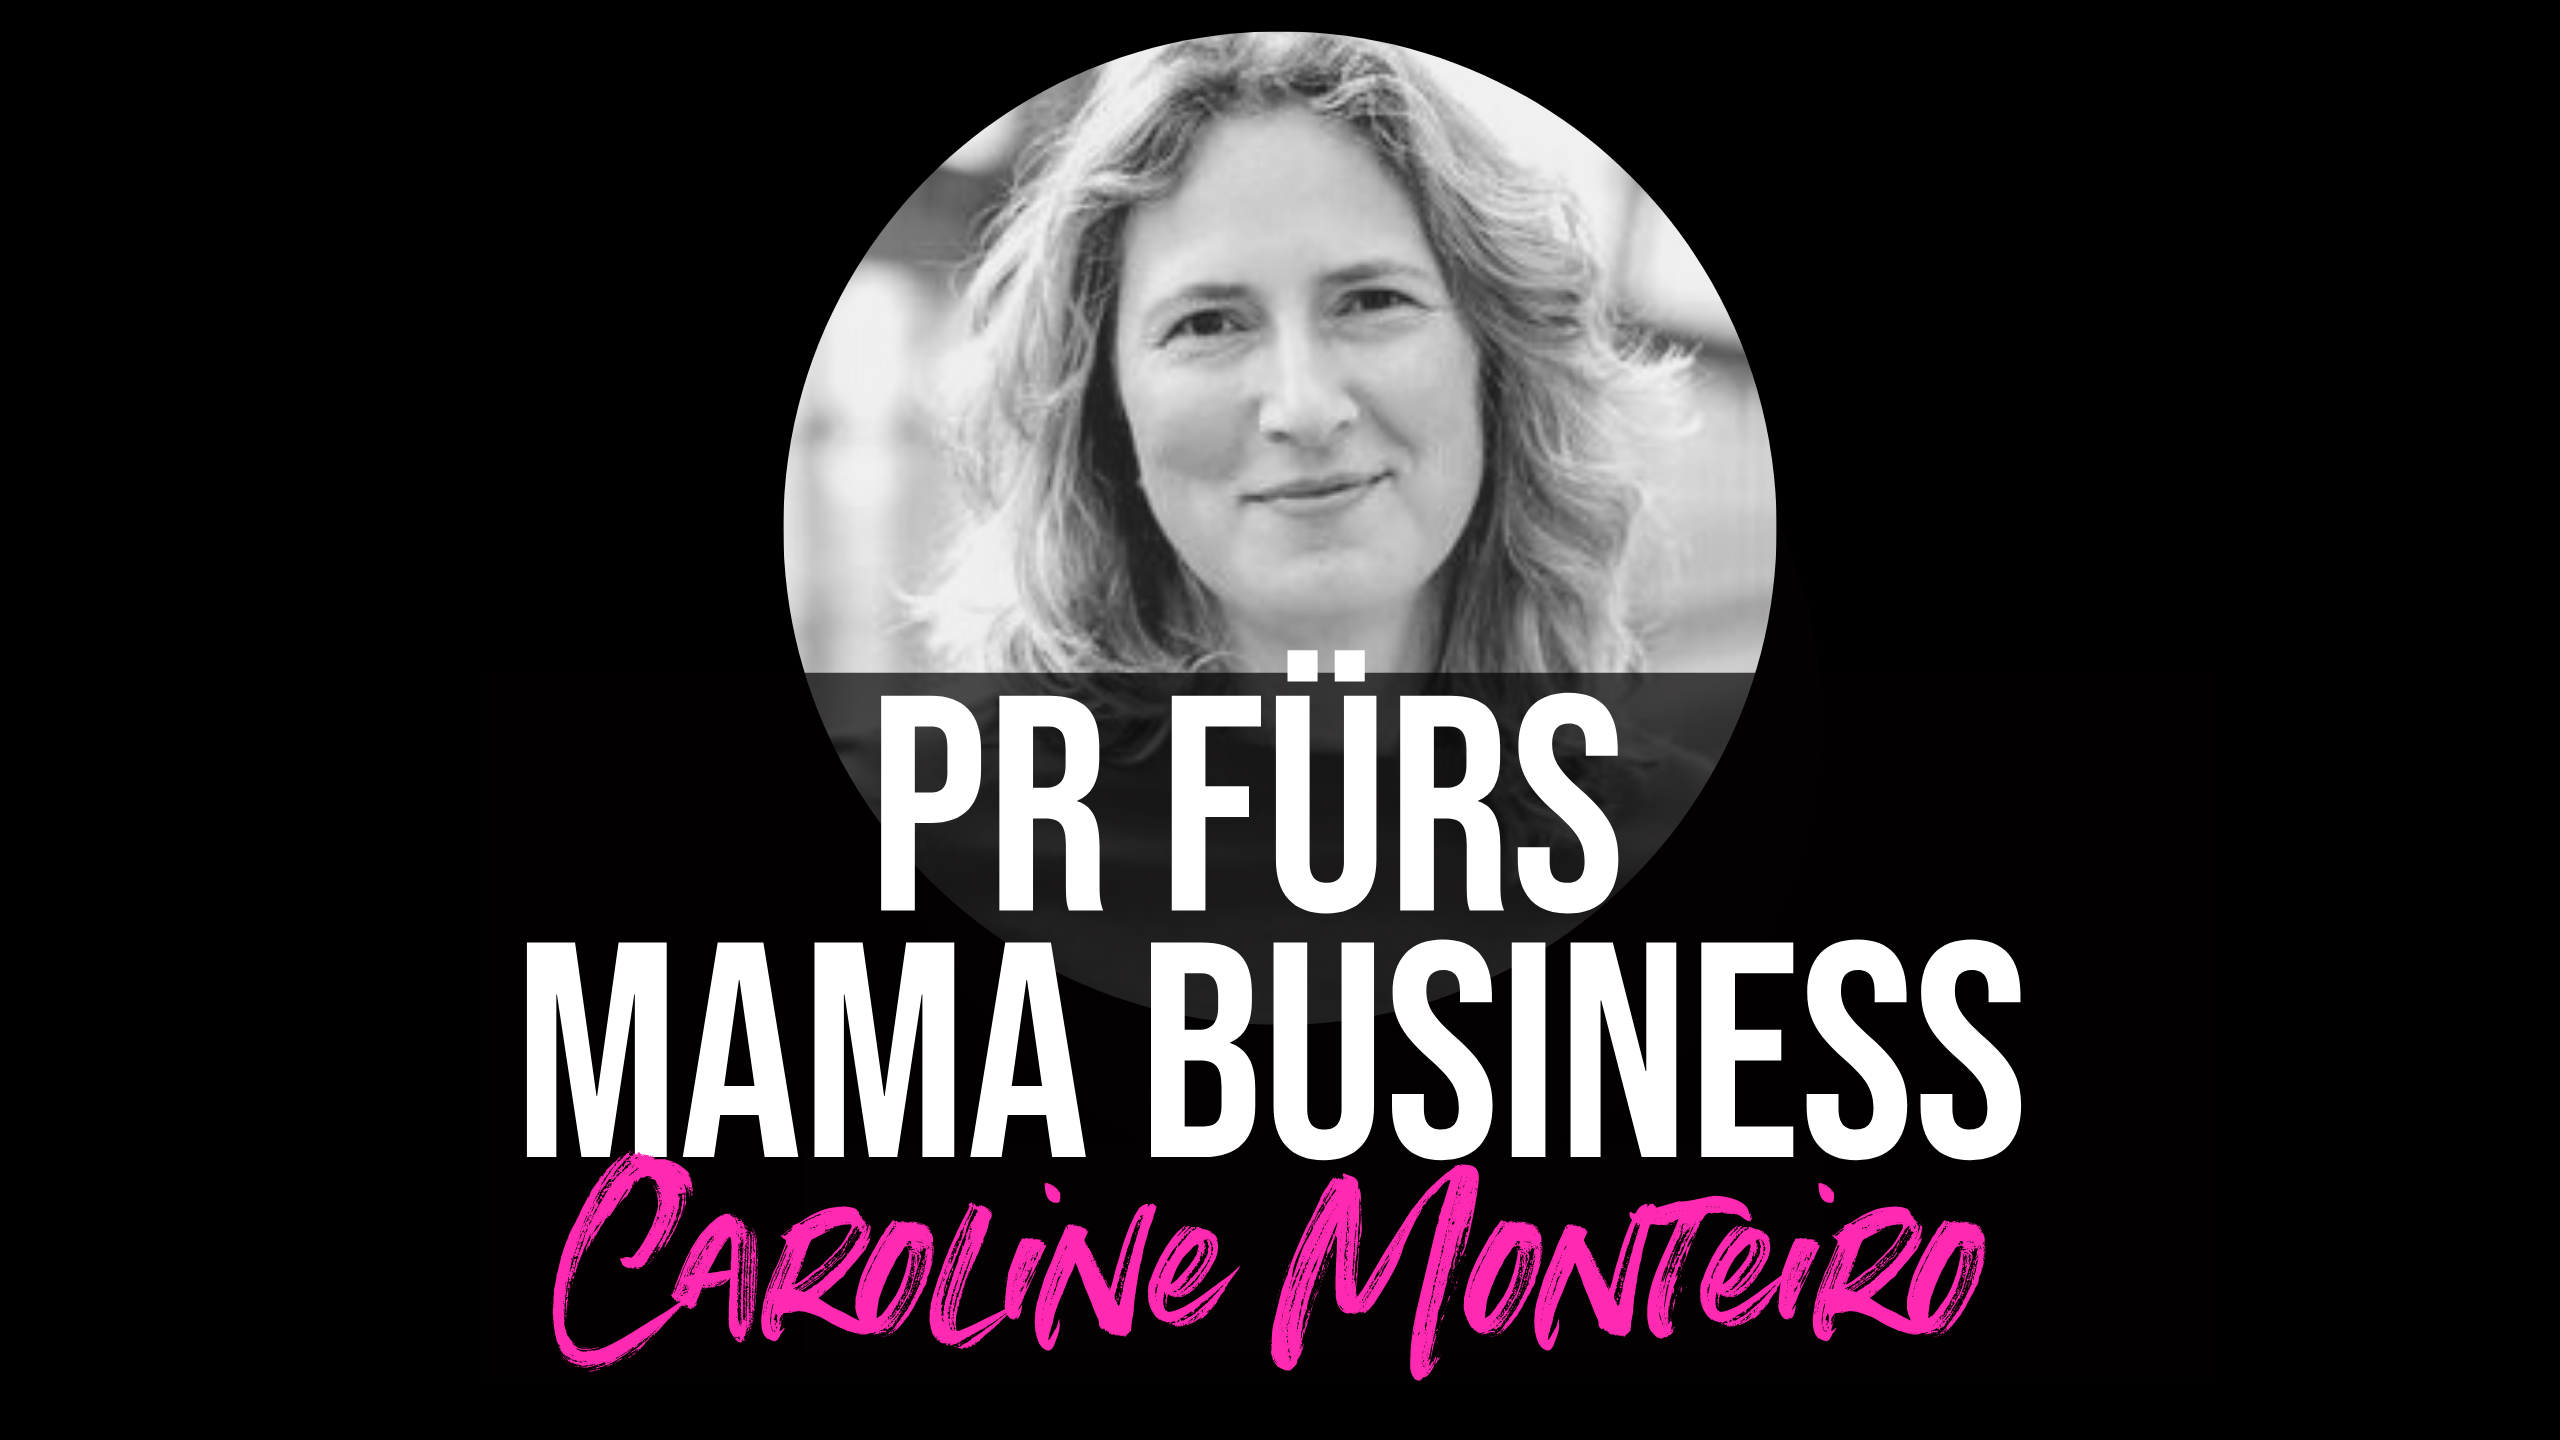 PR fürs Mama Business